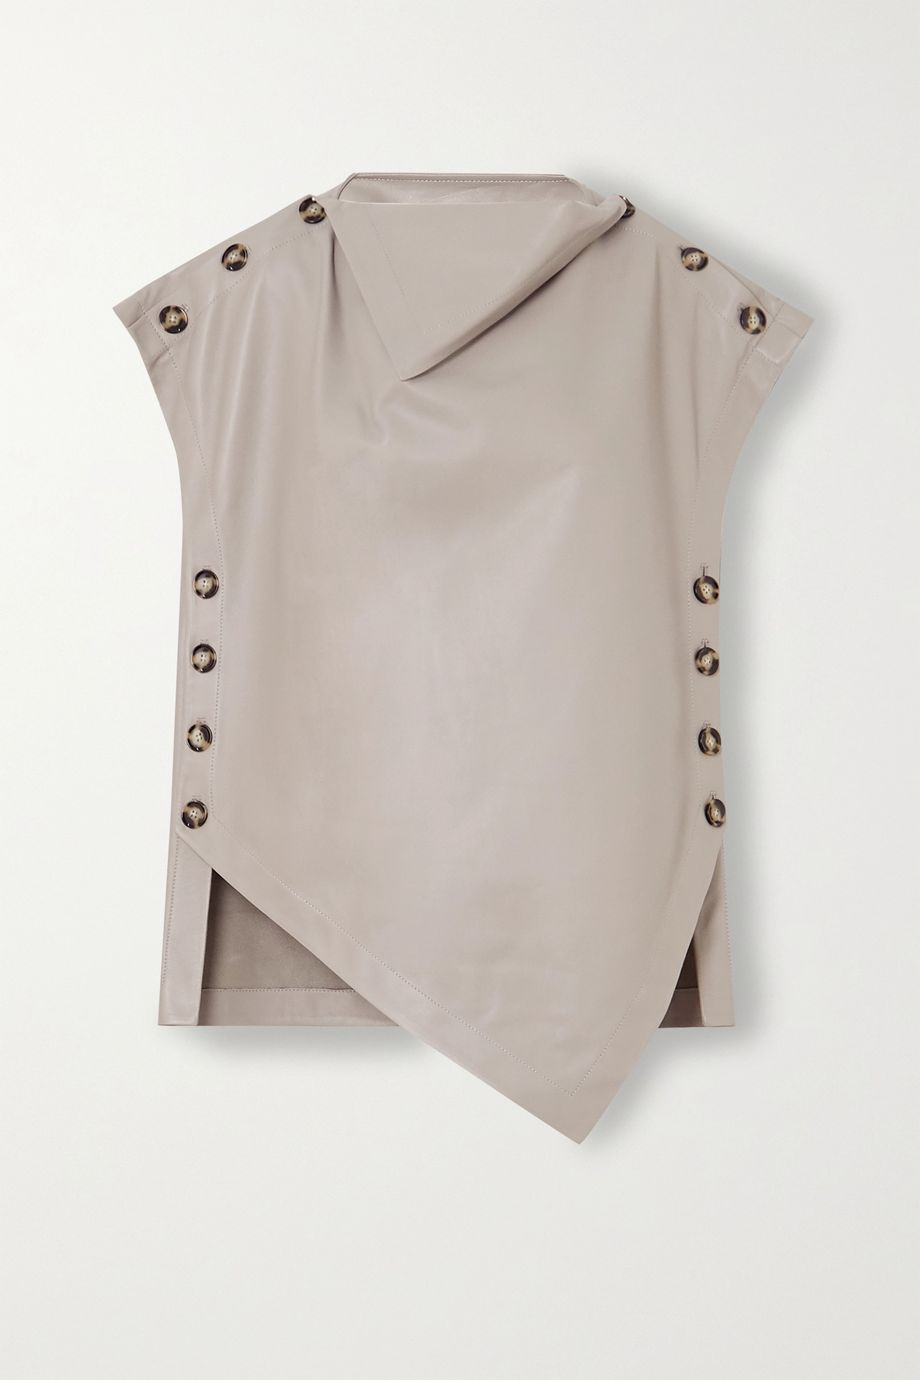 Proenza Schouler Oversized button-detailed draped leather top